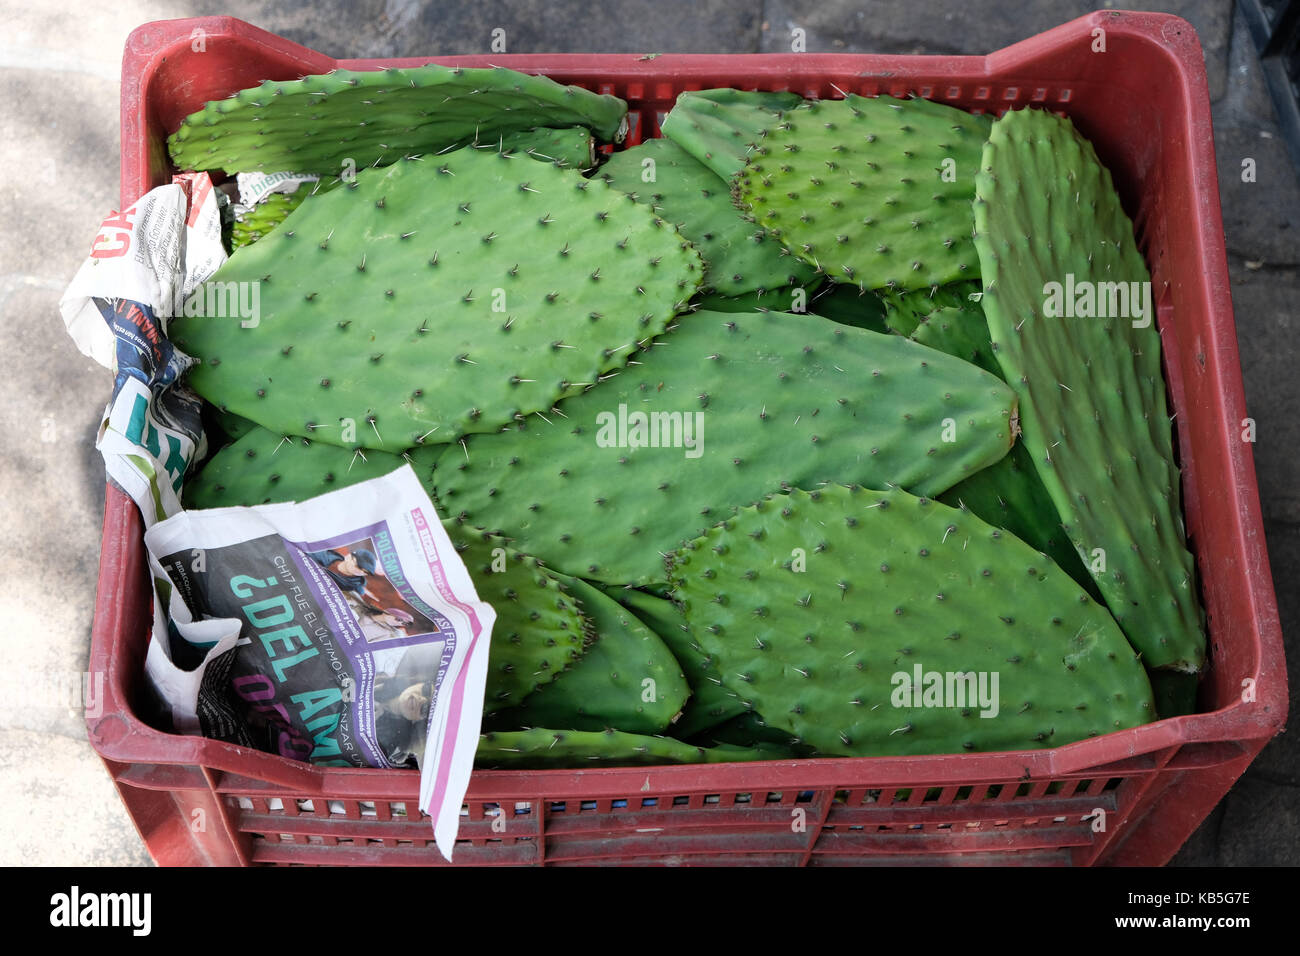 A crate full of cactus sits on the floor of a market in Mexico City, Mexico. - Stock Image